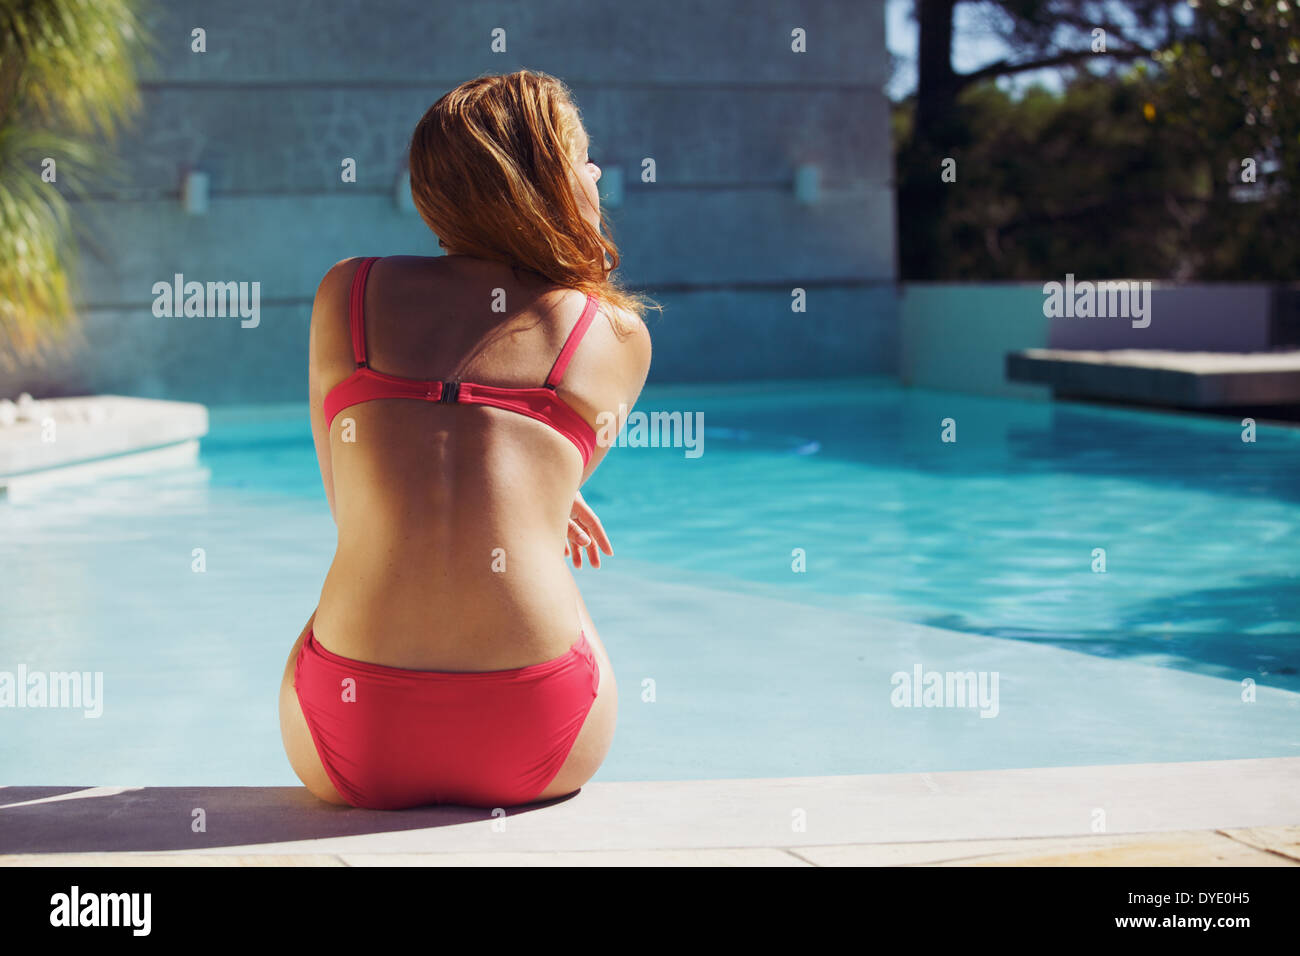 Young woman wearing red bikini enjoying summer at the swimming pool. Caucasian female model sitting on the edge of the pool. - Stock Image